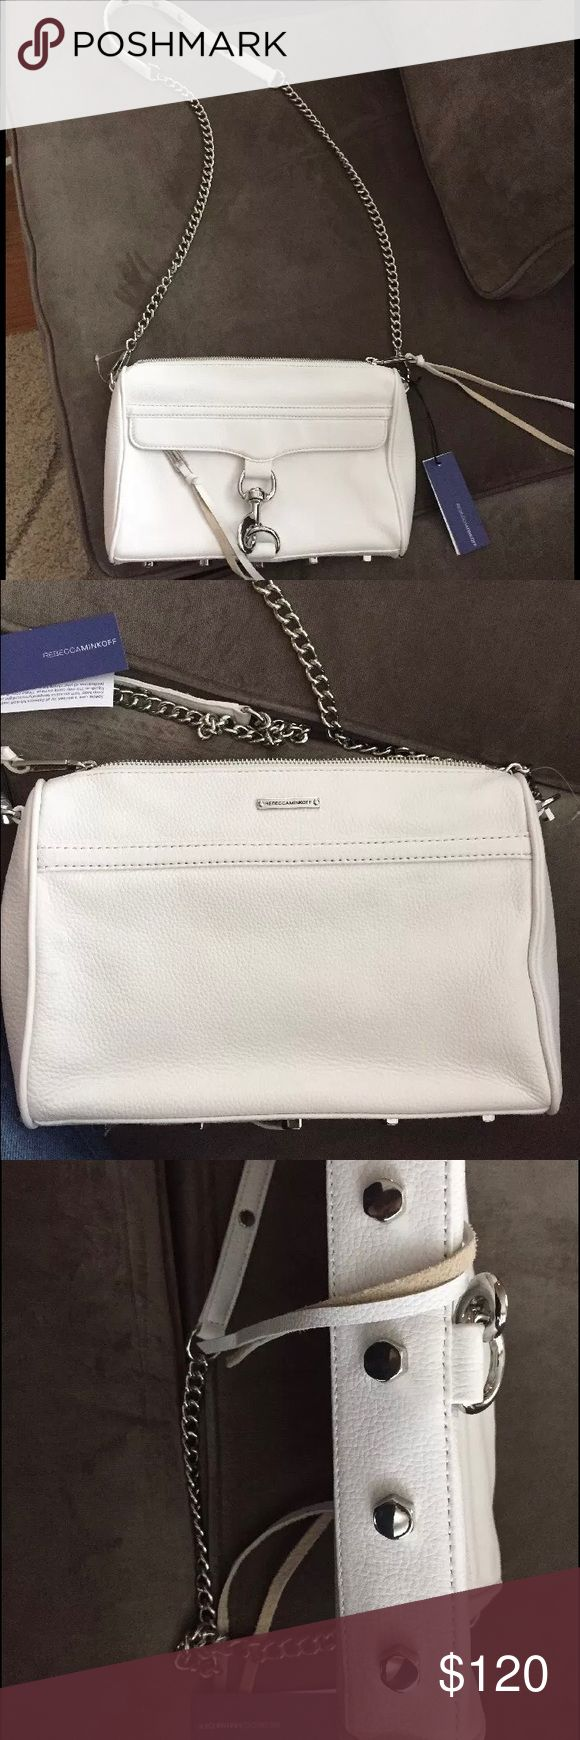 Rebecca Minkoff purse New!!! White! And perfect! I'm scared of wearing white handbags Rebecca Minkoff Bags Crossbody Bags